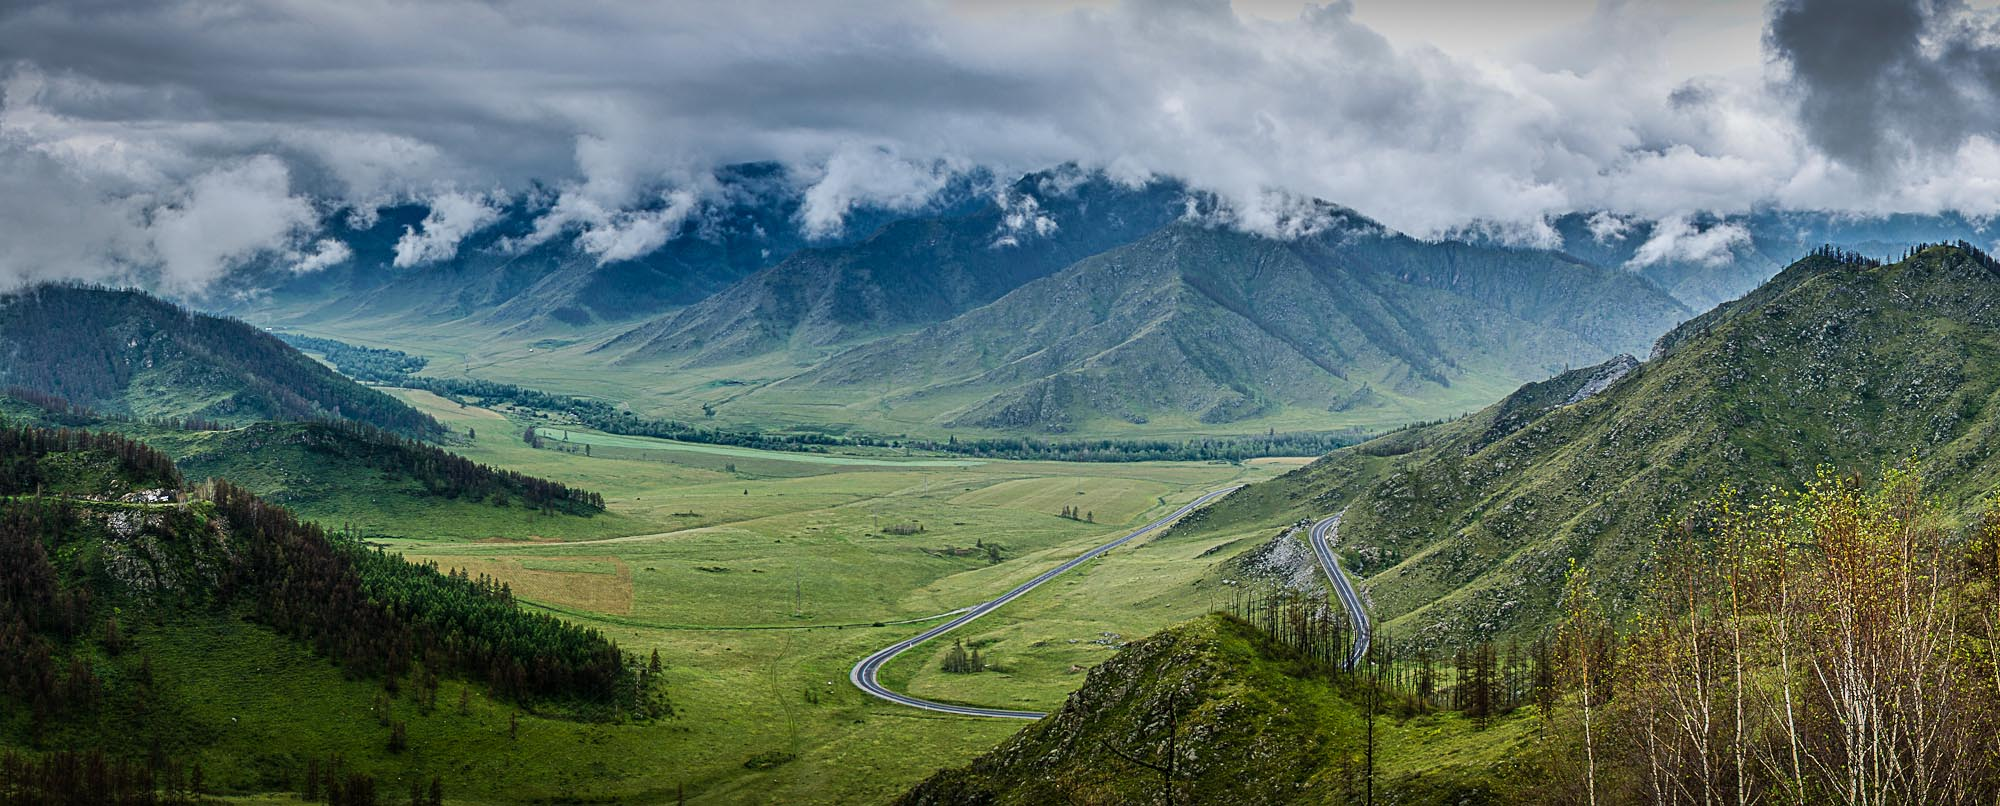 Chike-Taman, Altai by Serge Bystro